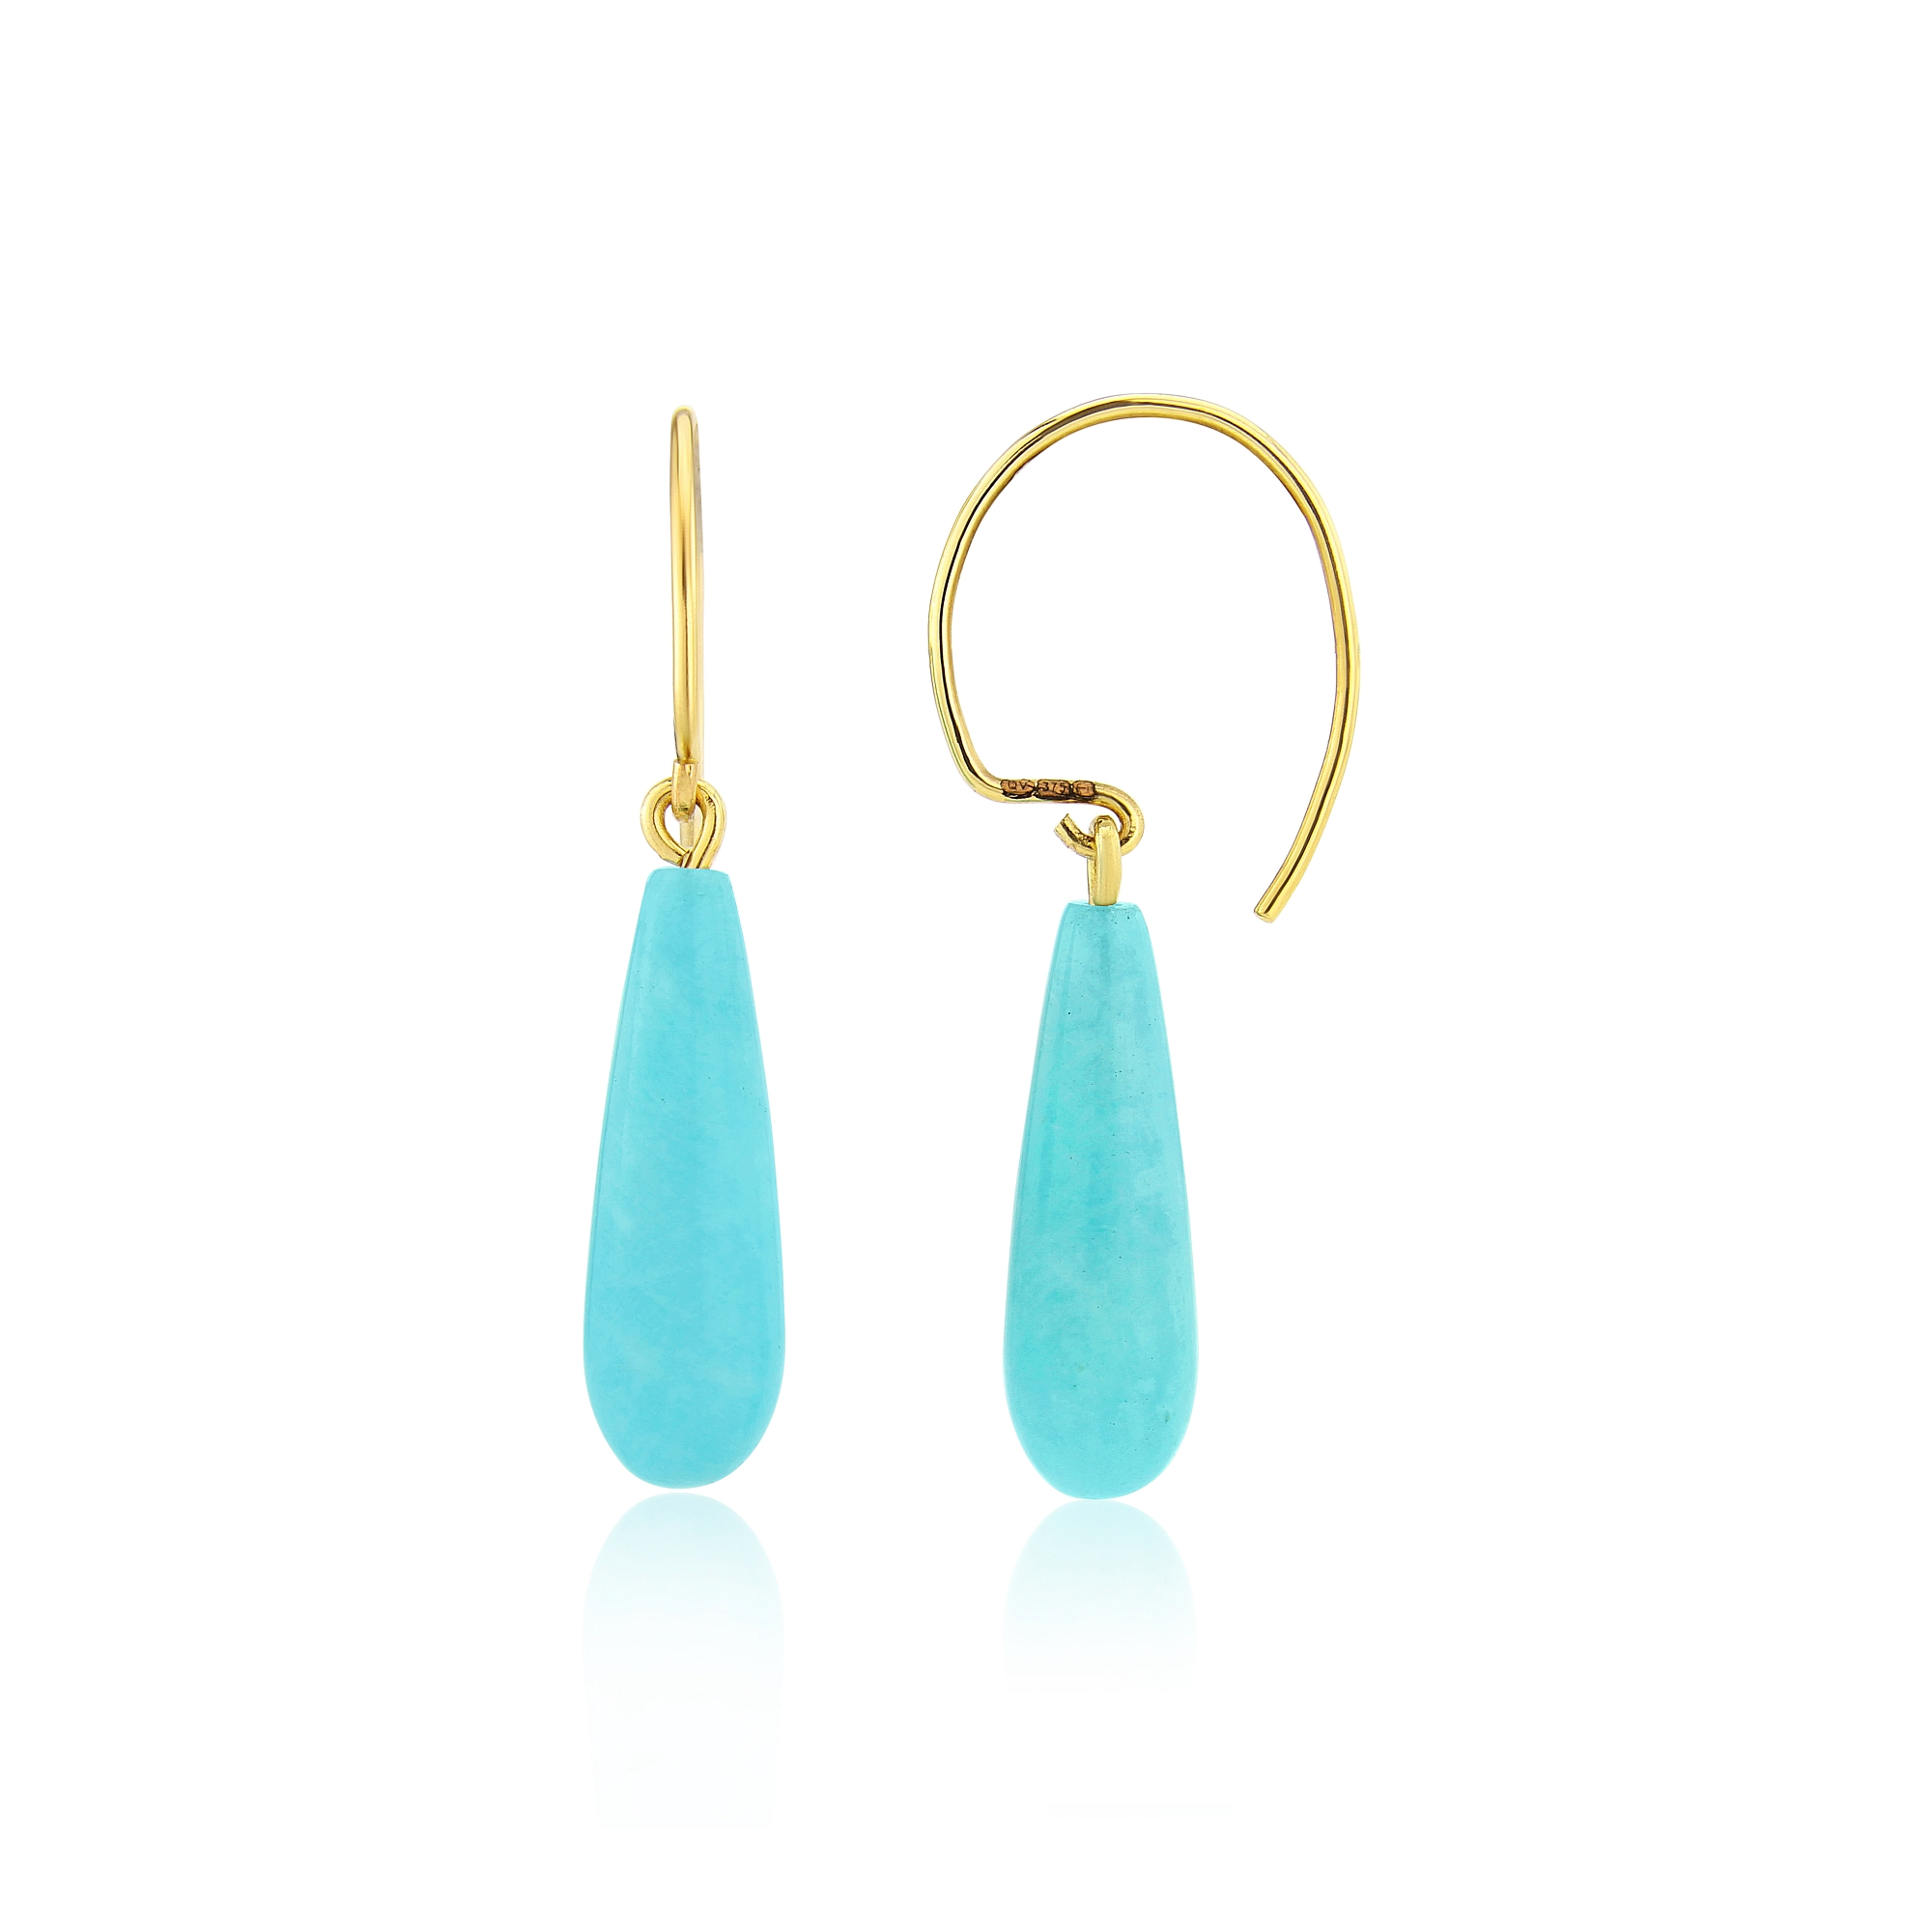 Amazonite pippins on hand made gold wire's